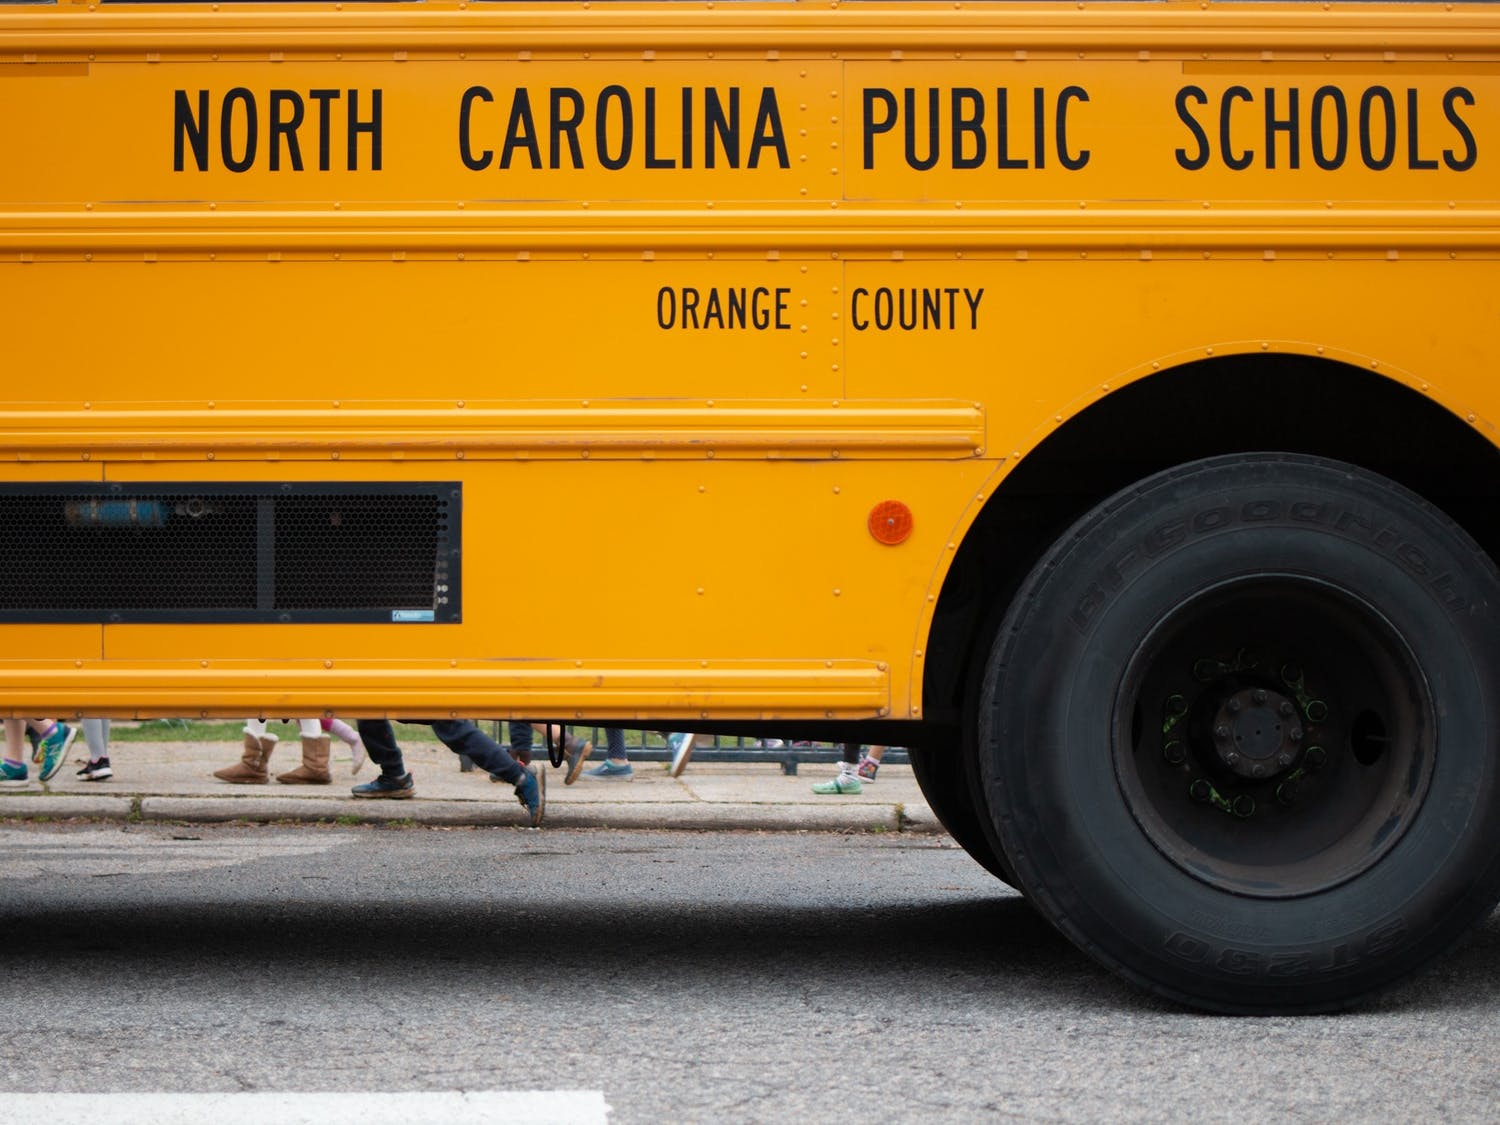 A North Carolina school bus located in Carrboro, N.C. on Wednesday, Feb. 12, 2020. On Feb. 6, 2020, local schools dismissed early in order to get students home in the midst of severe  weather. The storms  coincided with dismissals, however, causing students and staff to return indoors.